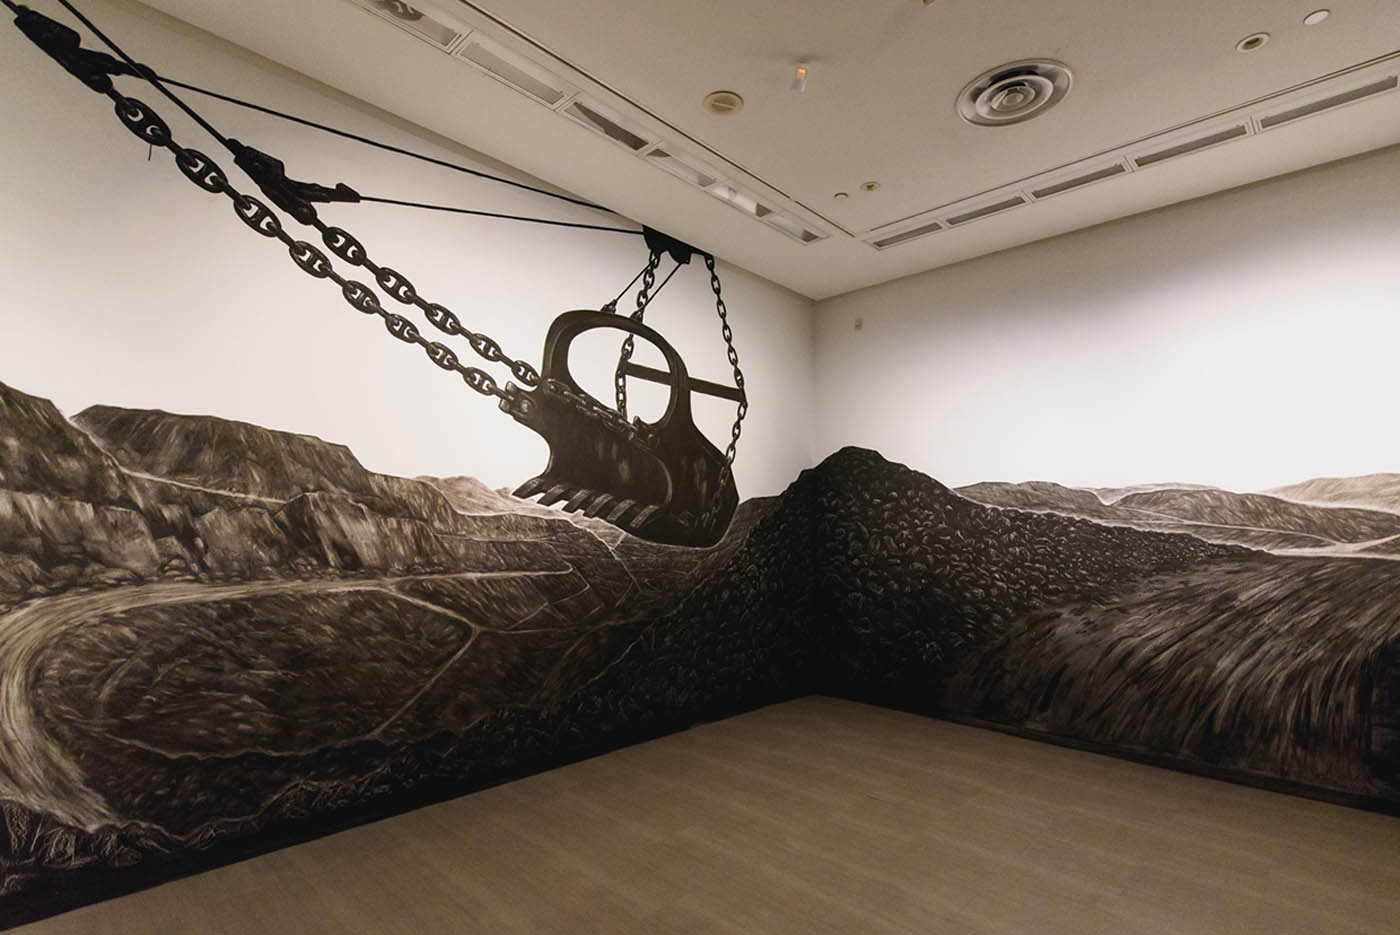 2015 SINGAPORE ART MUSEUM pandora_s_box, charcoal mural, 2015_site-specific_1